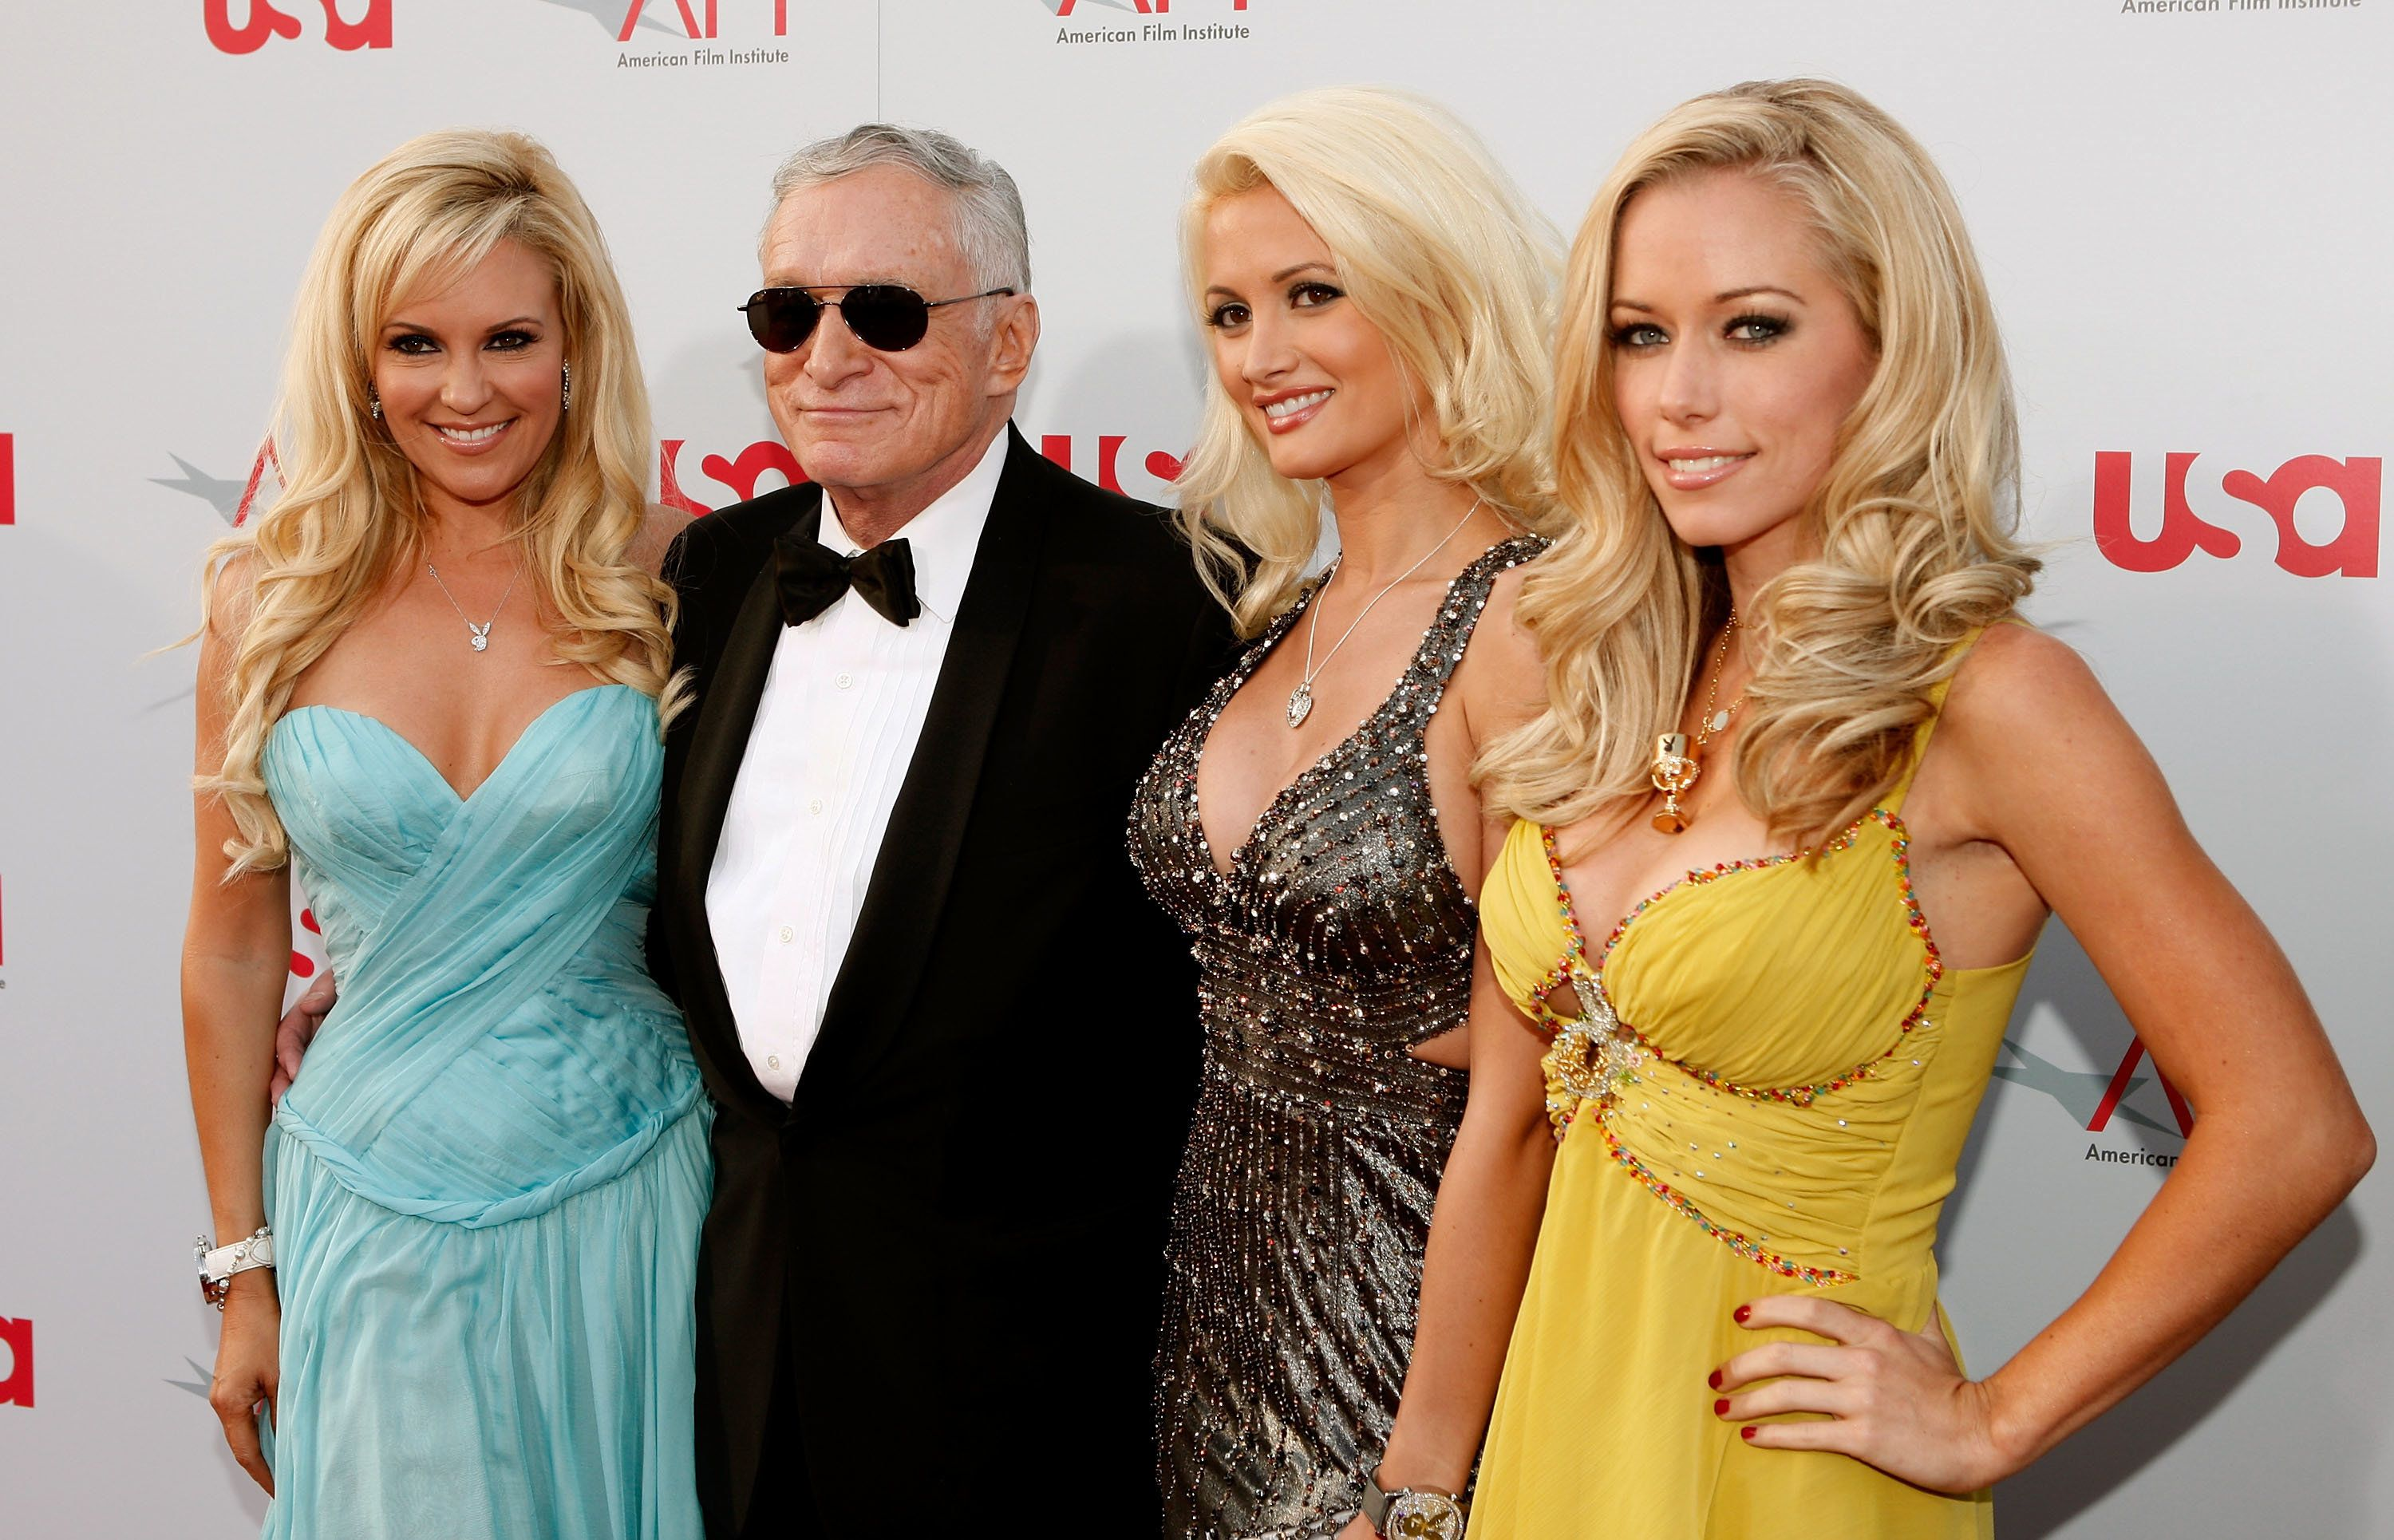 Holly Madison, Hugh Hefner, Bridget Marquardt, and Kendra Wilkinson in 2008.